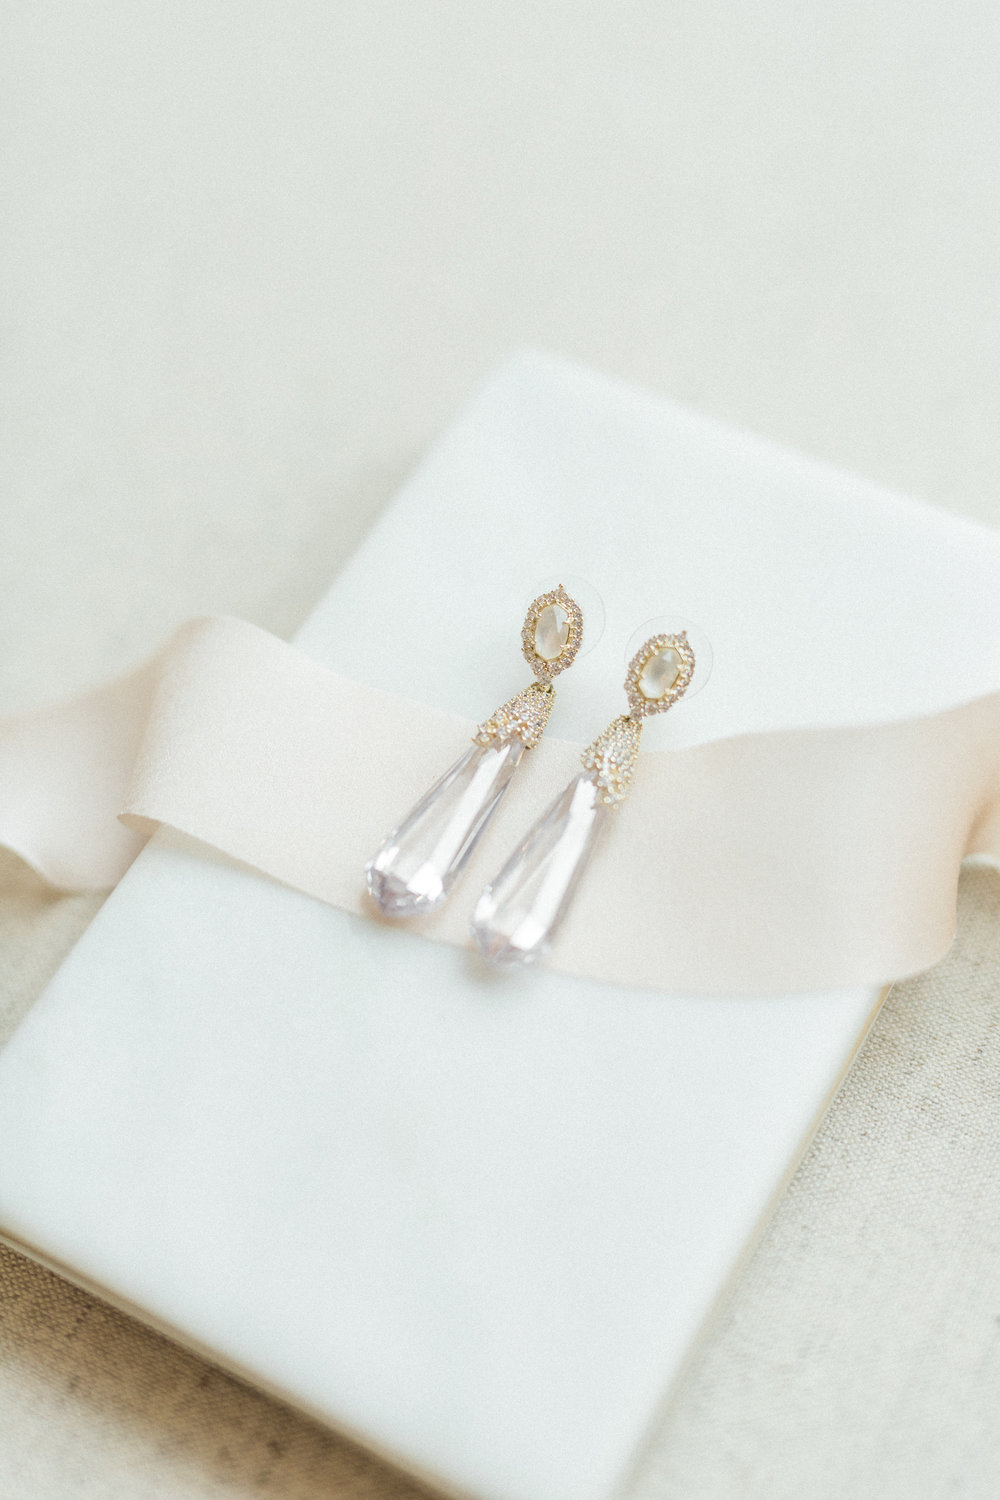 Wedding Day Jewelry Earrings from Kendra Scott | Fine Art European Inspired Wedding